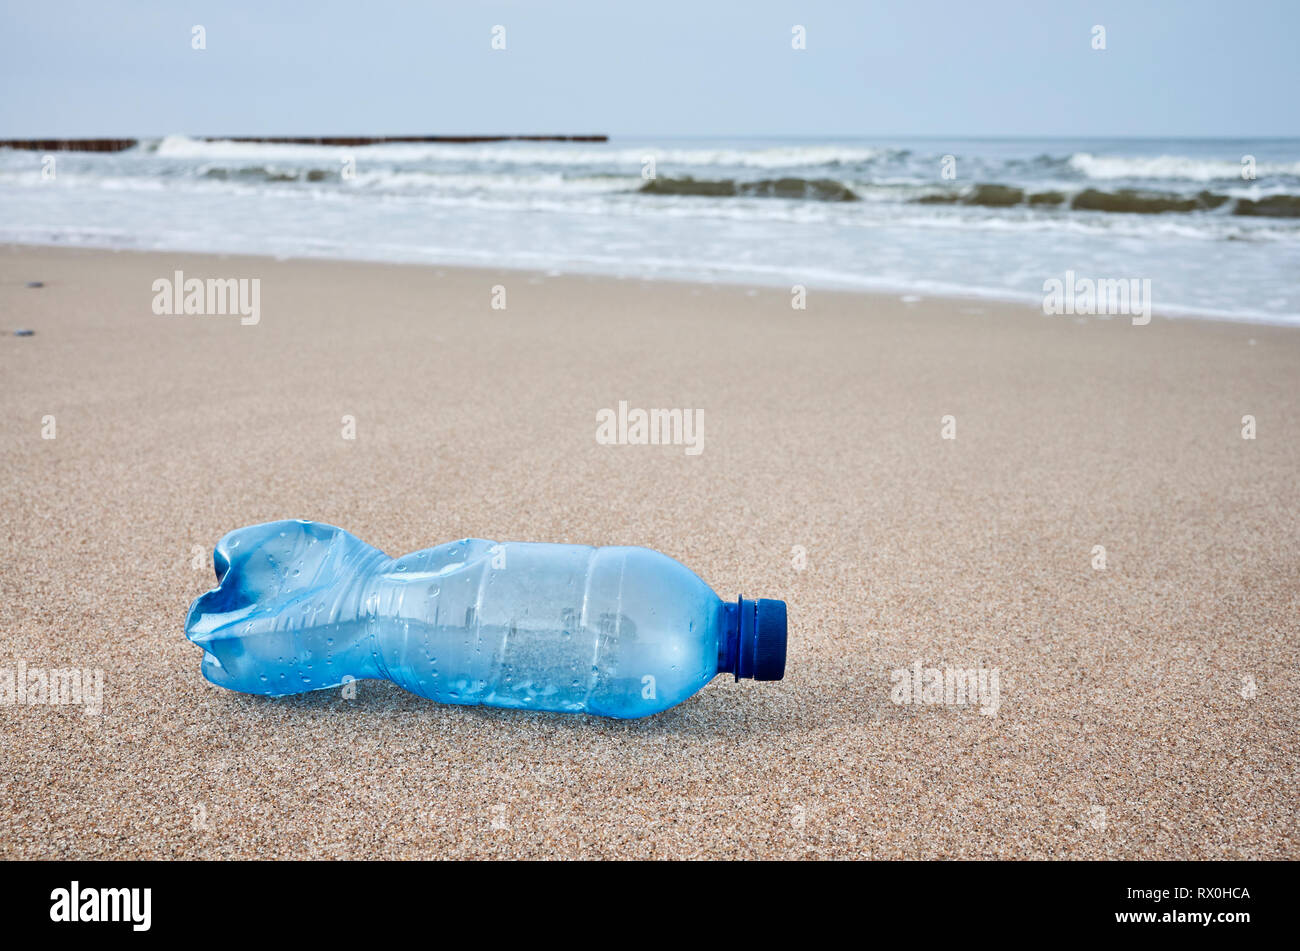 Plastic bottle left on a beach, selective focus, color toning applied. - Stock Image